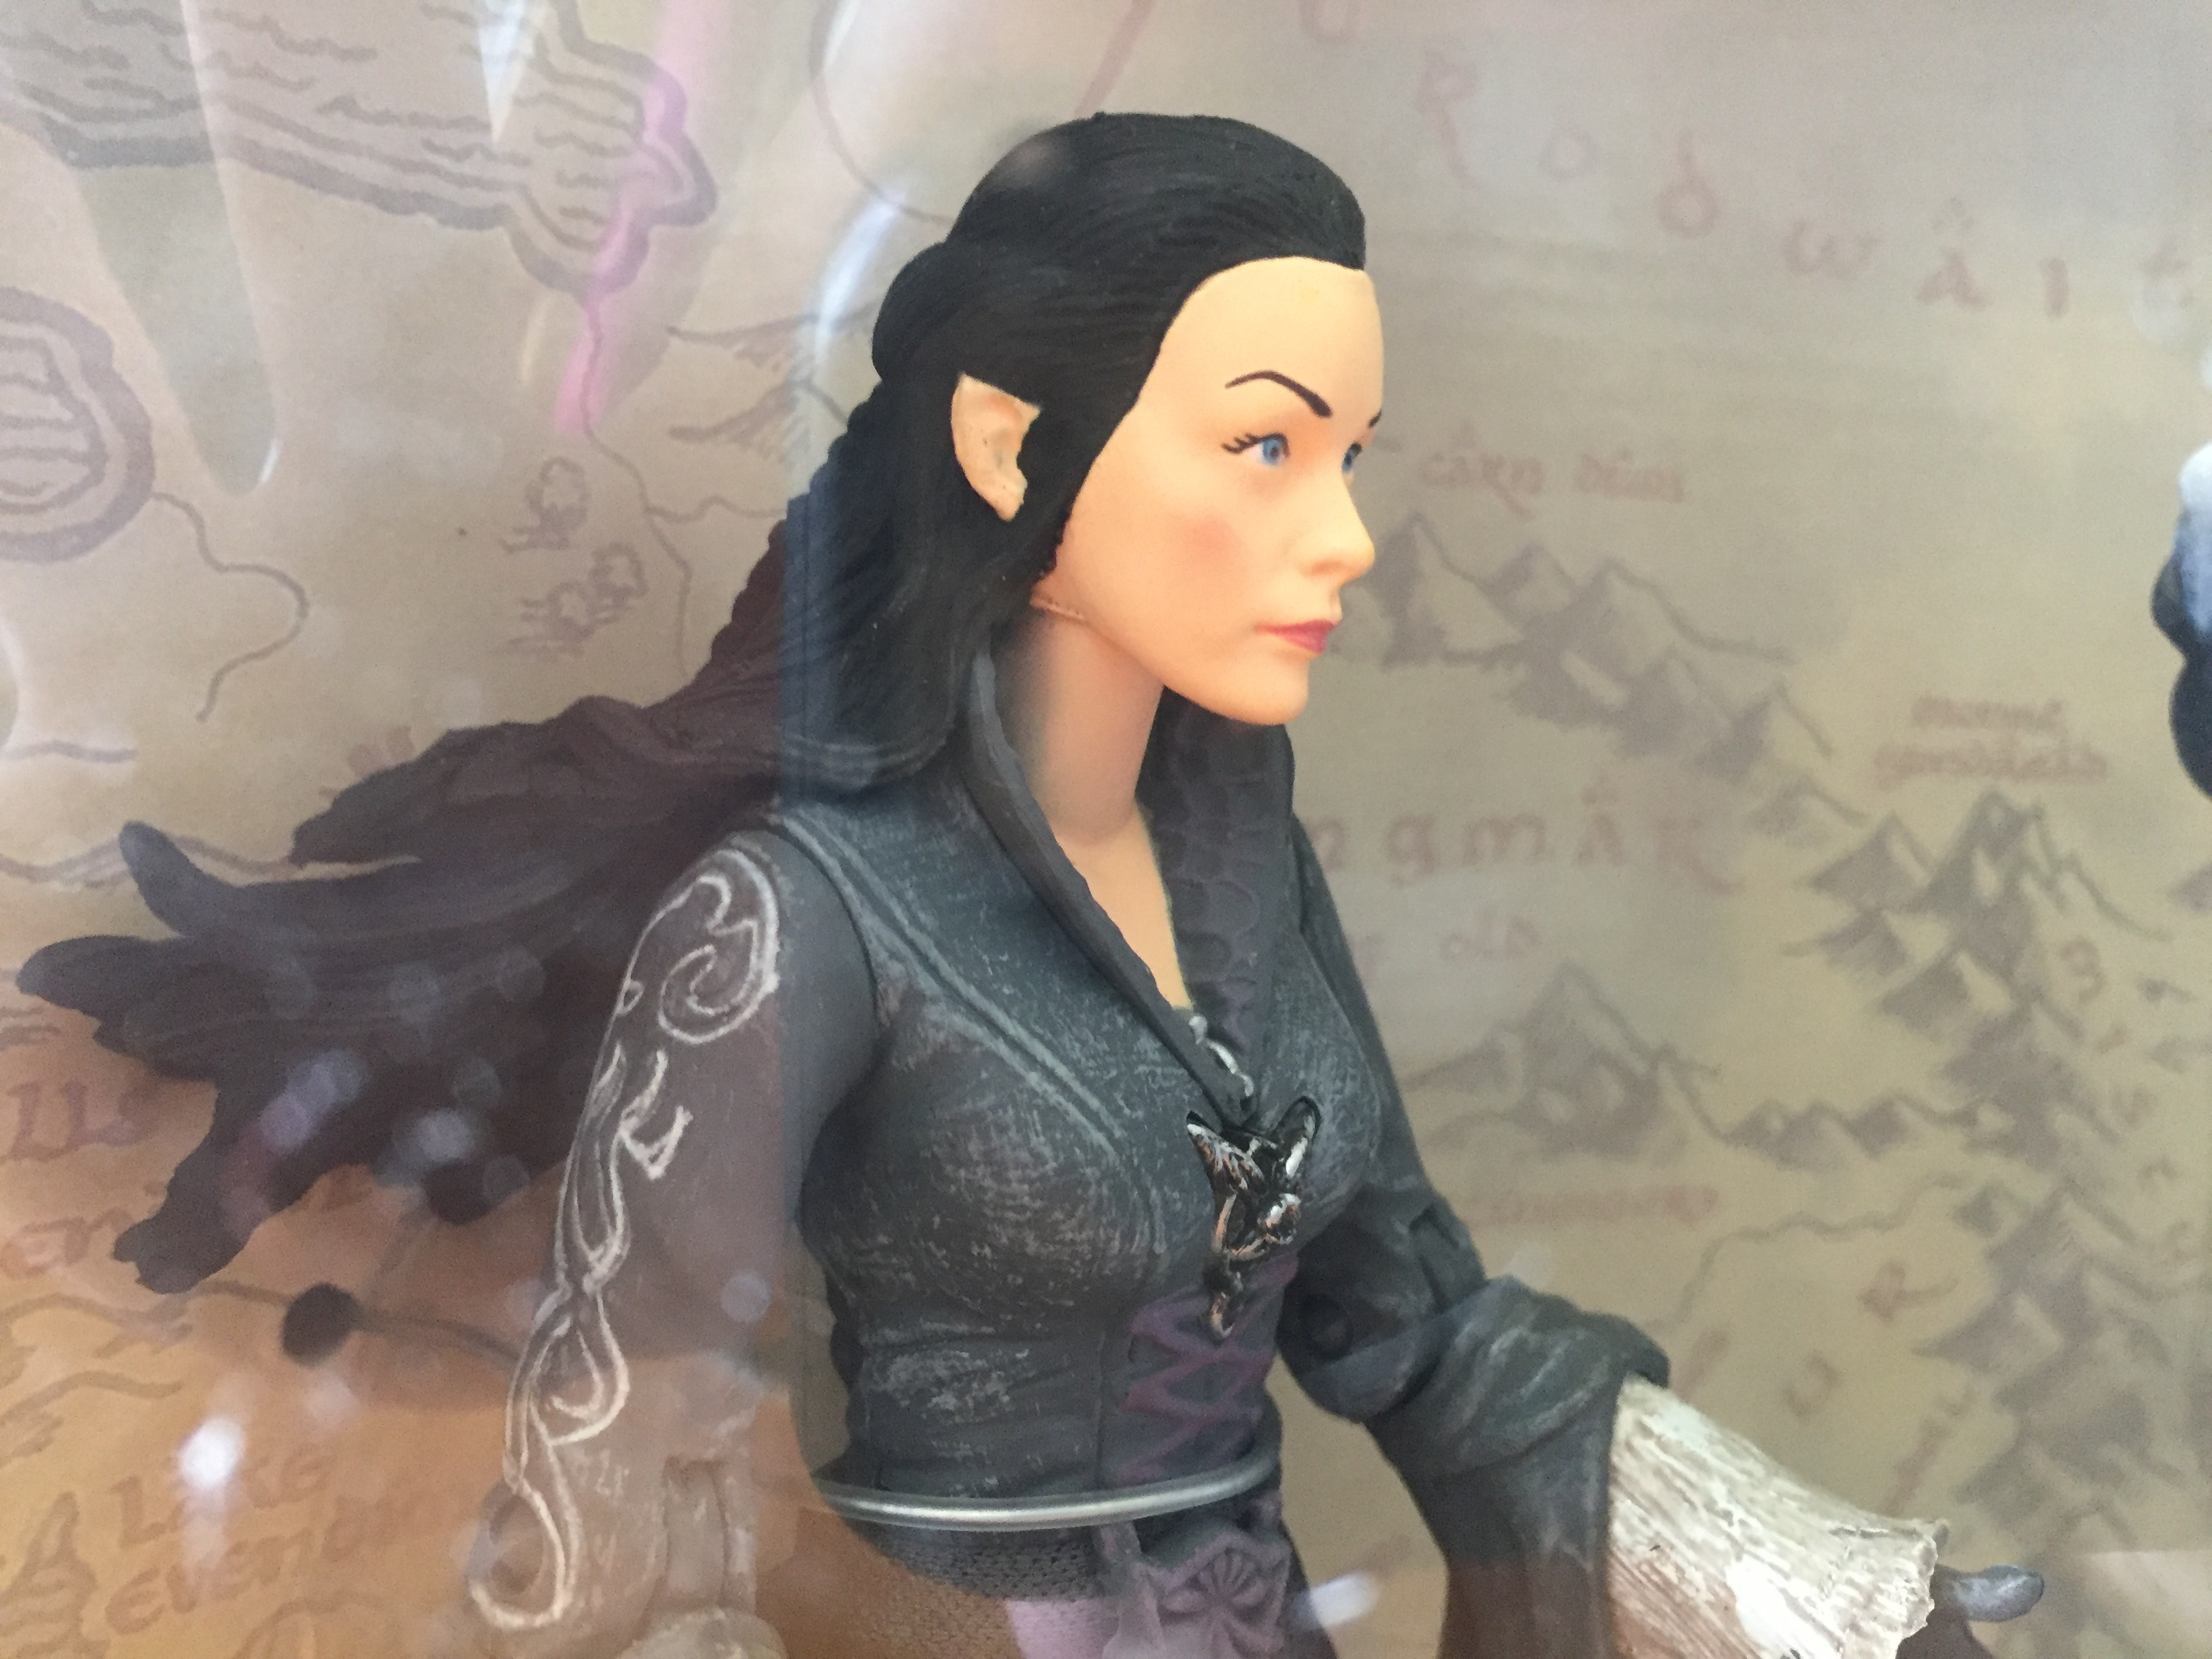 Lord of The Rings Action Figure – Arwen and Asfaloth Horse with Frodo (NEW IN BOX)